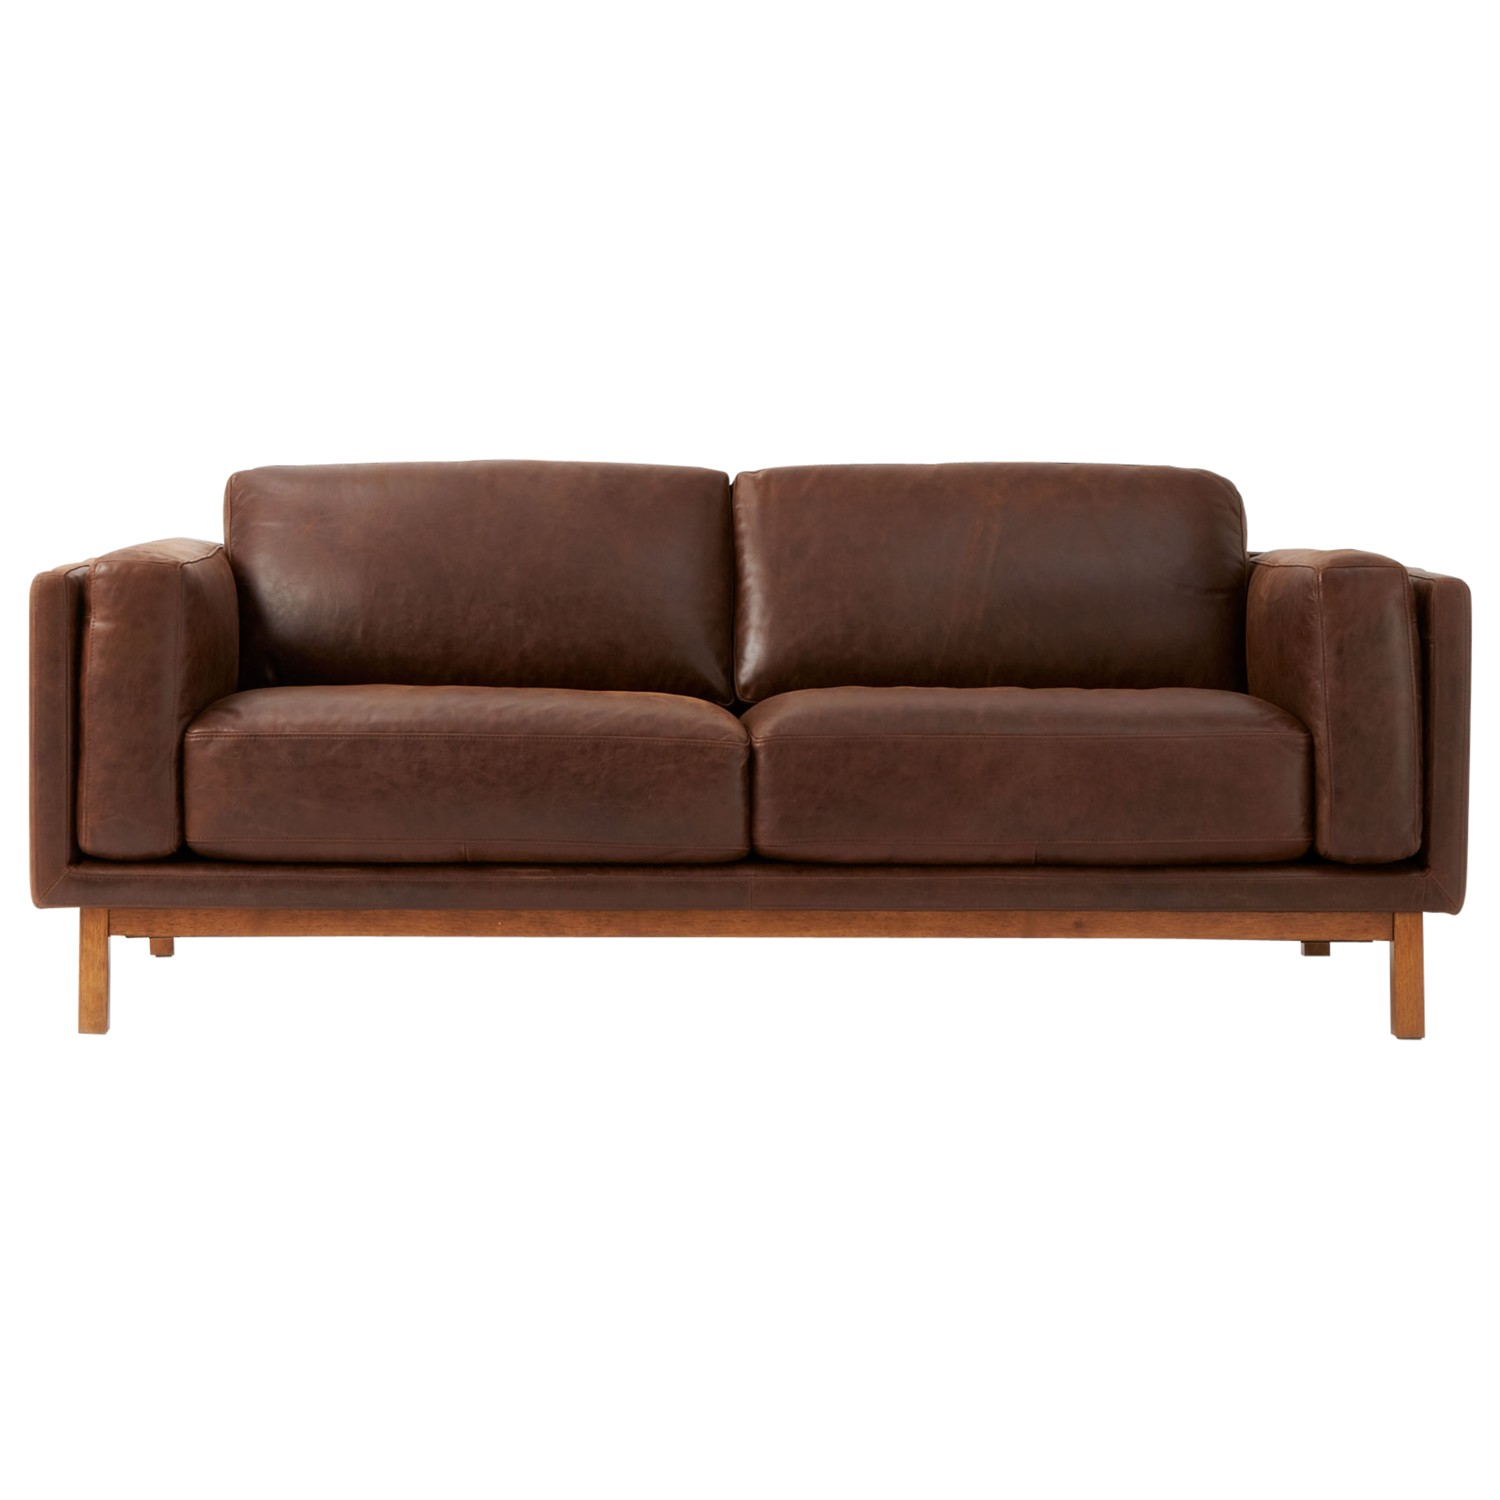 West elm dekalb aniline leather sofa molasses review for Best west elm sofa